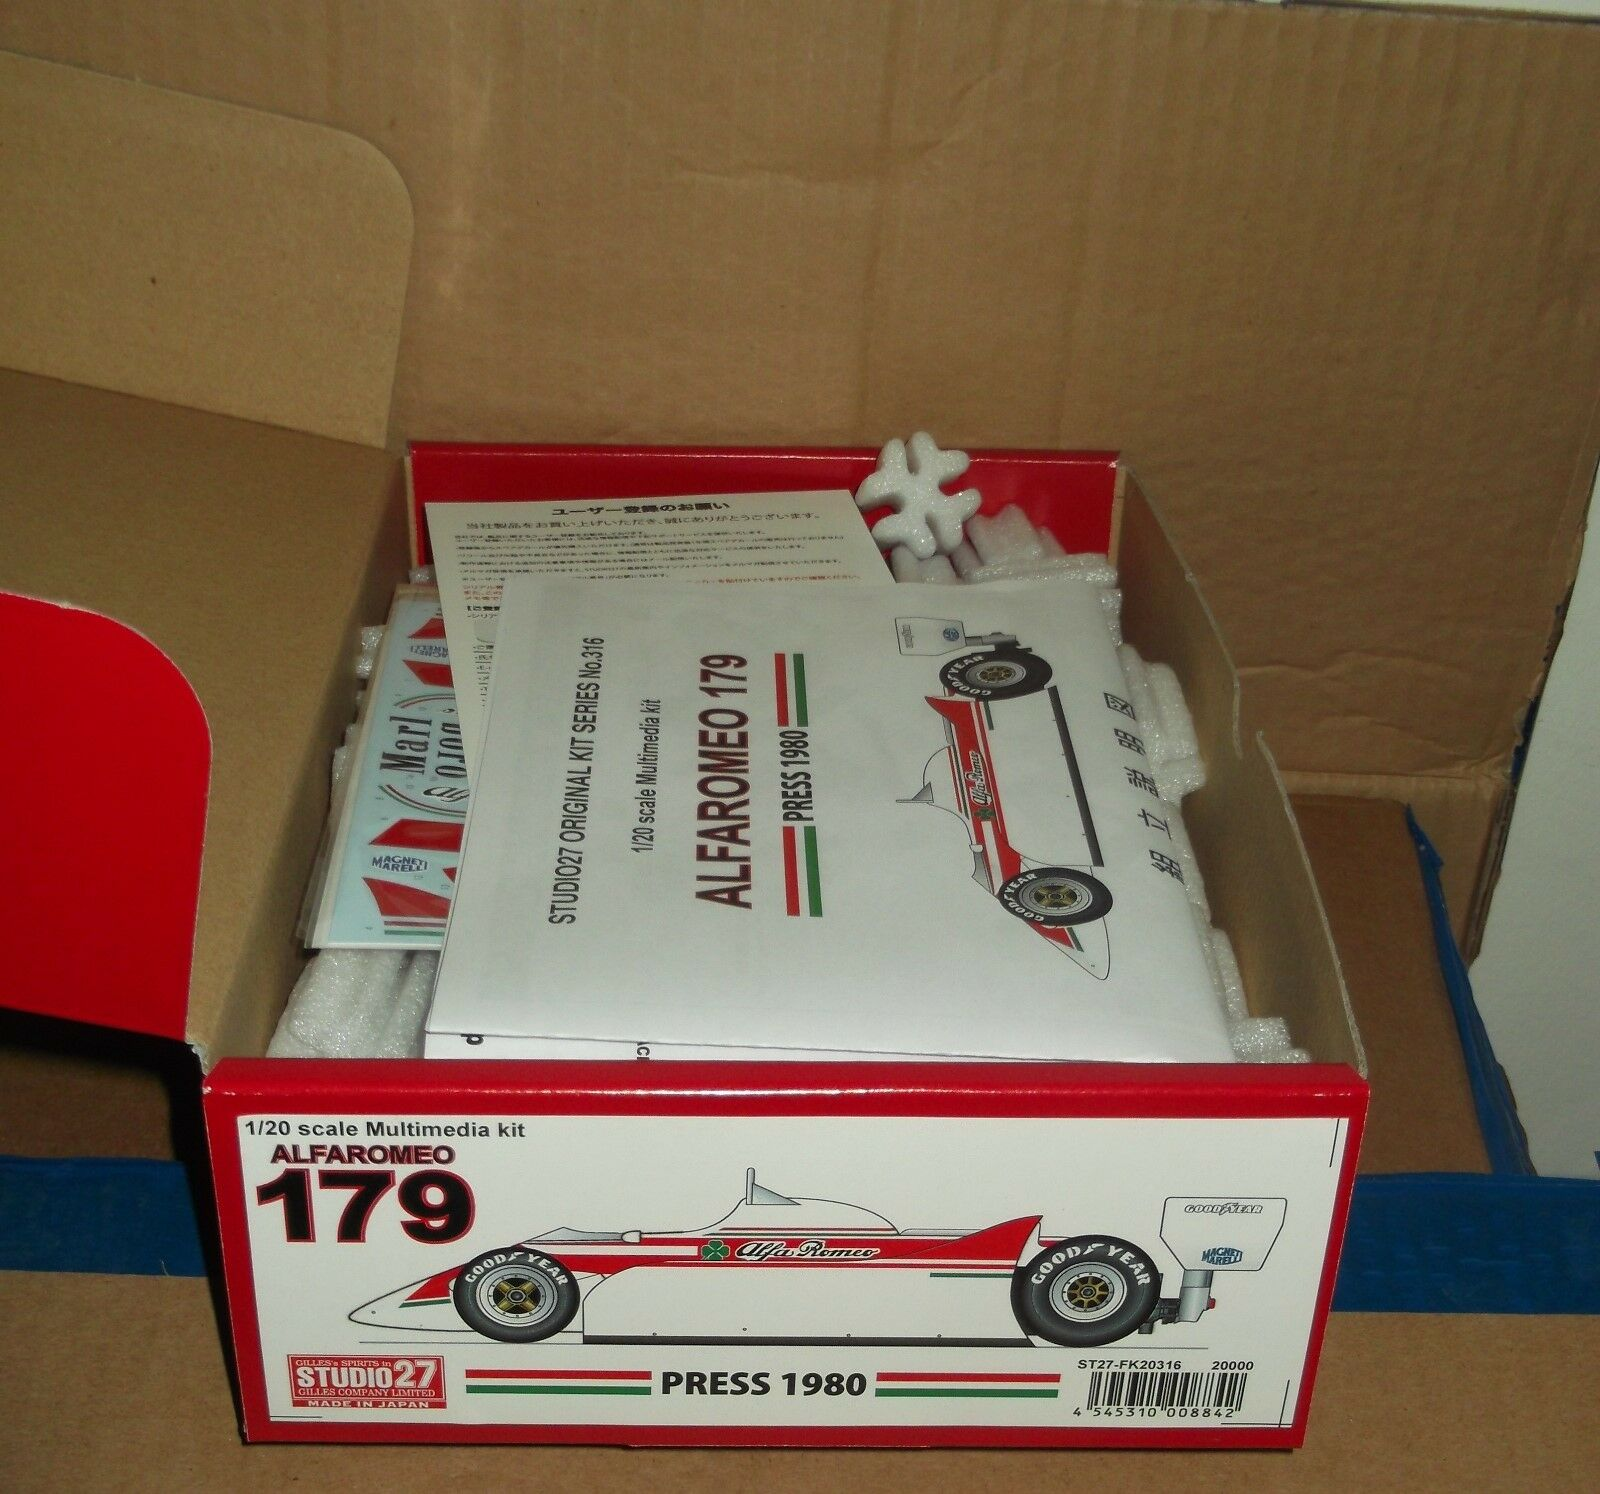 Studio 27 ALFA ROMEO 179 press 1980 1/20 scale model kit ST27-FK20316